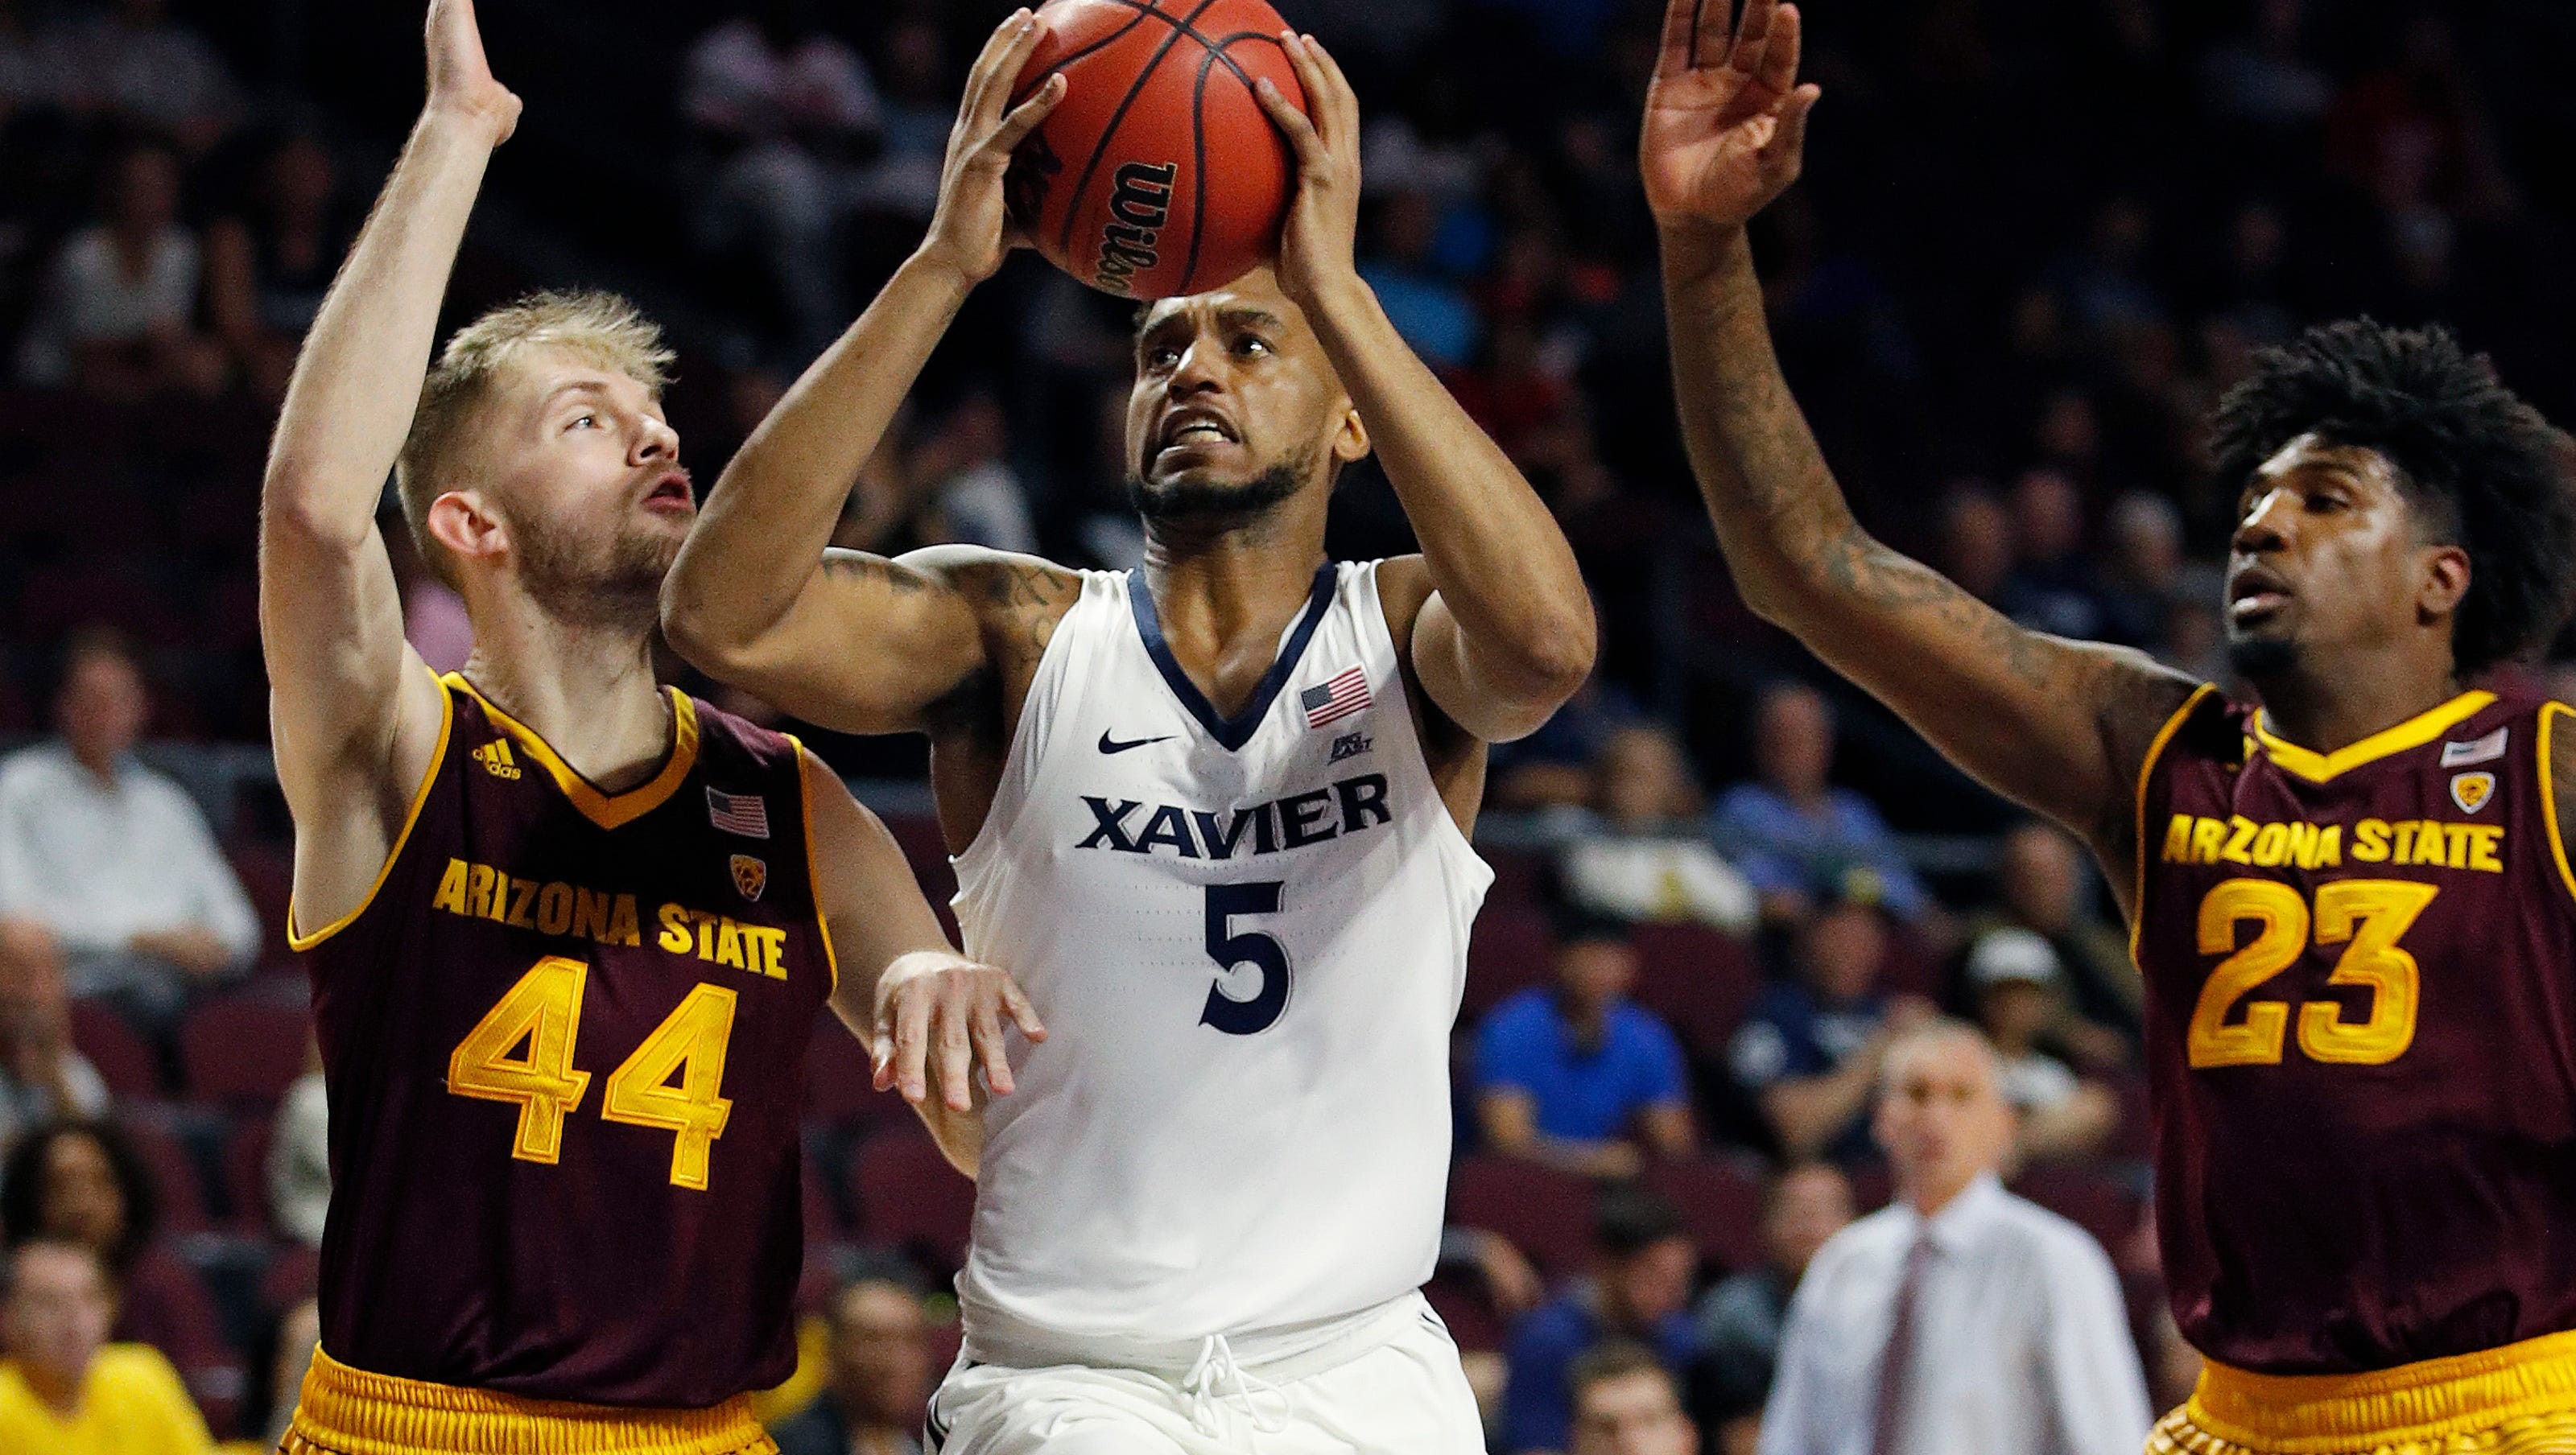 asu basketball hopes to rediscover its luck in vegas